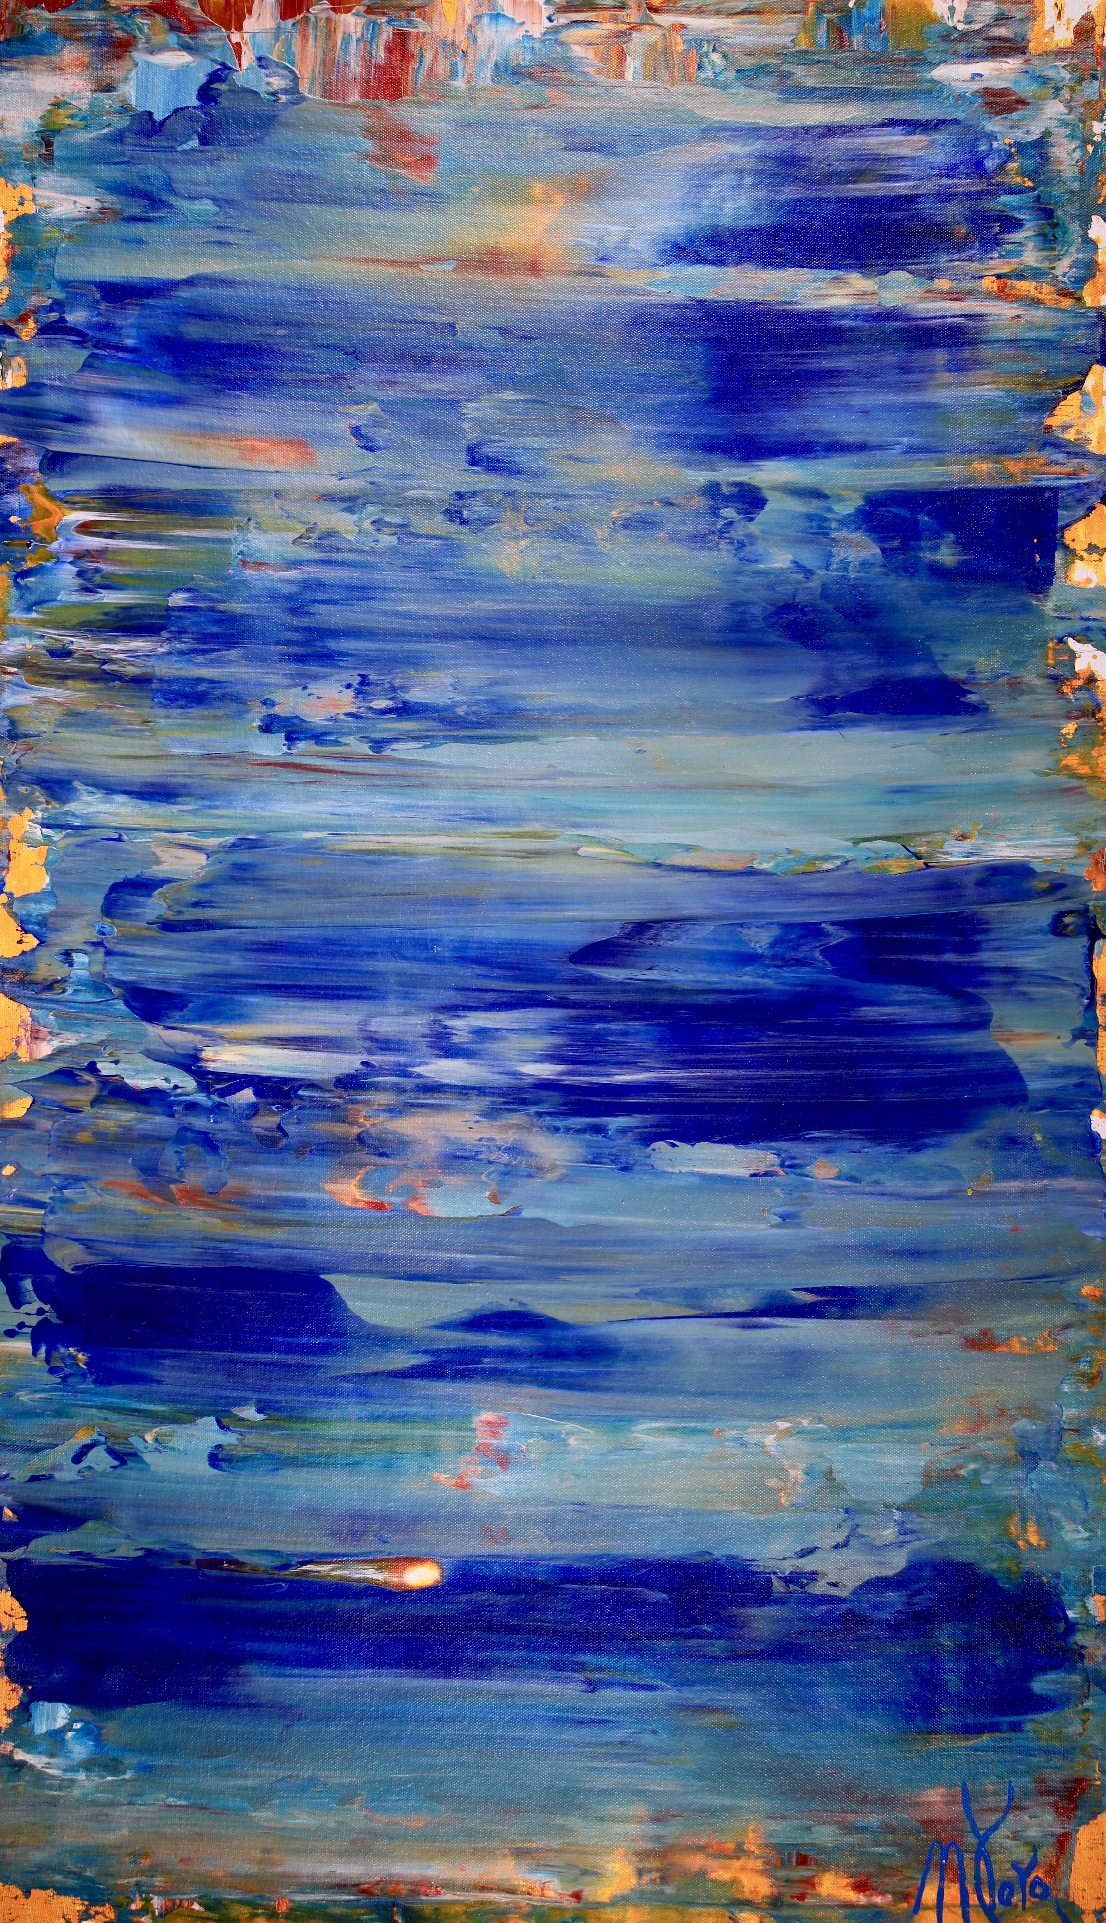 Mediterraneo (2018) Acrylic painting by Nestor Toro in Los Angeles